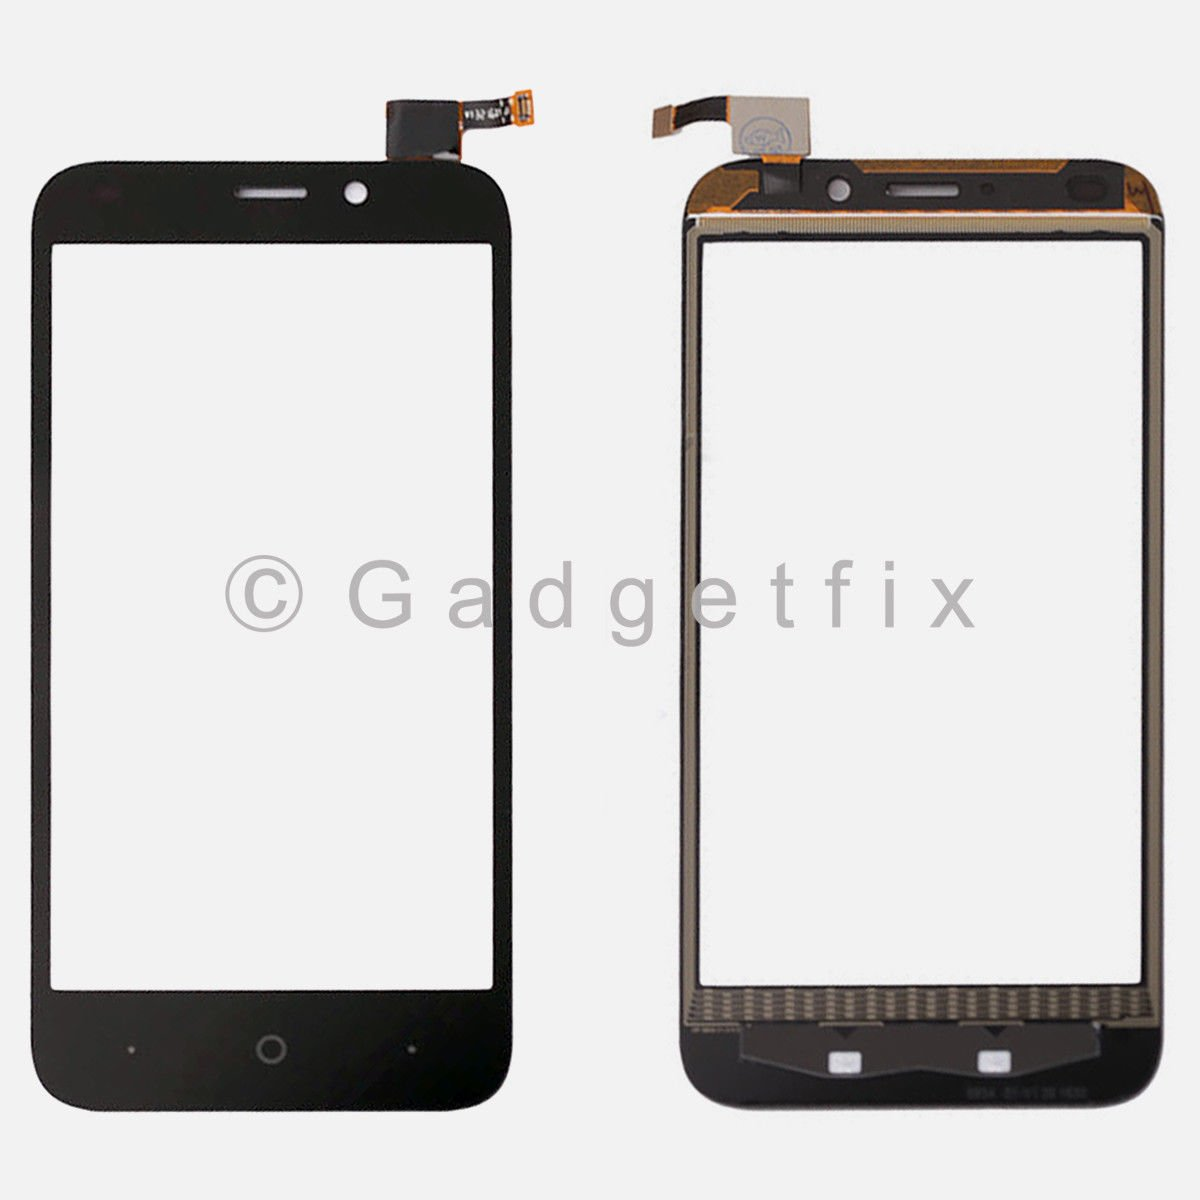 1d8cb858762fe6 Home Other Parts ZTE Others Touch Screen Digitizer Glass Replacement Parts  For ZTE Avid Trio Z833 5